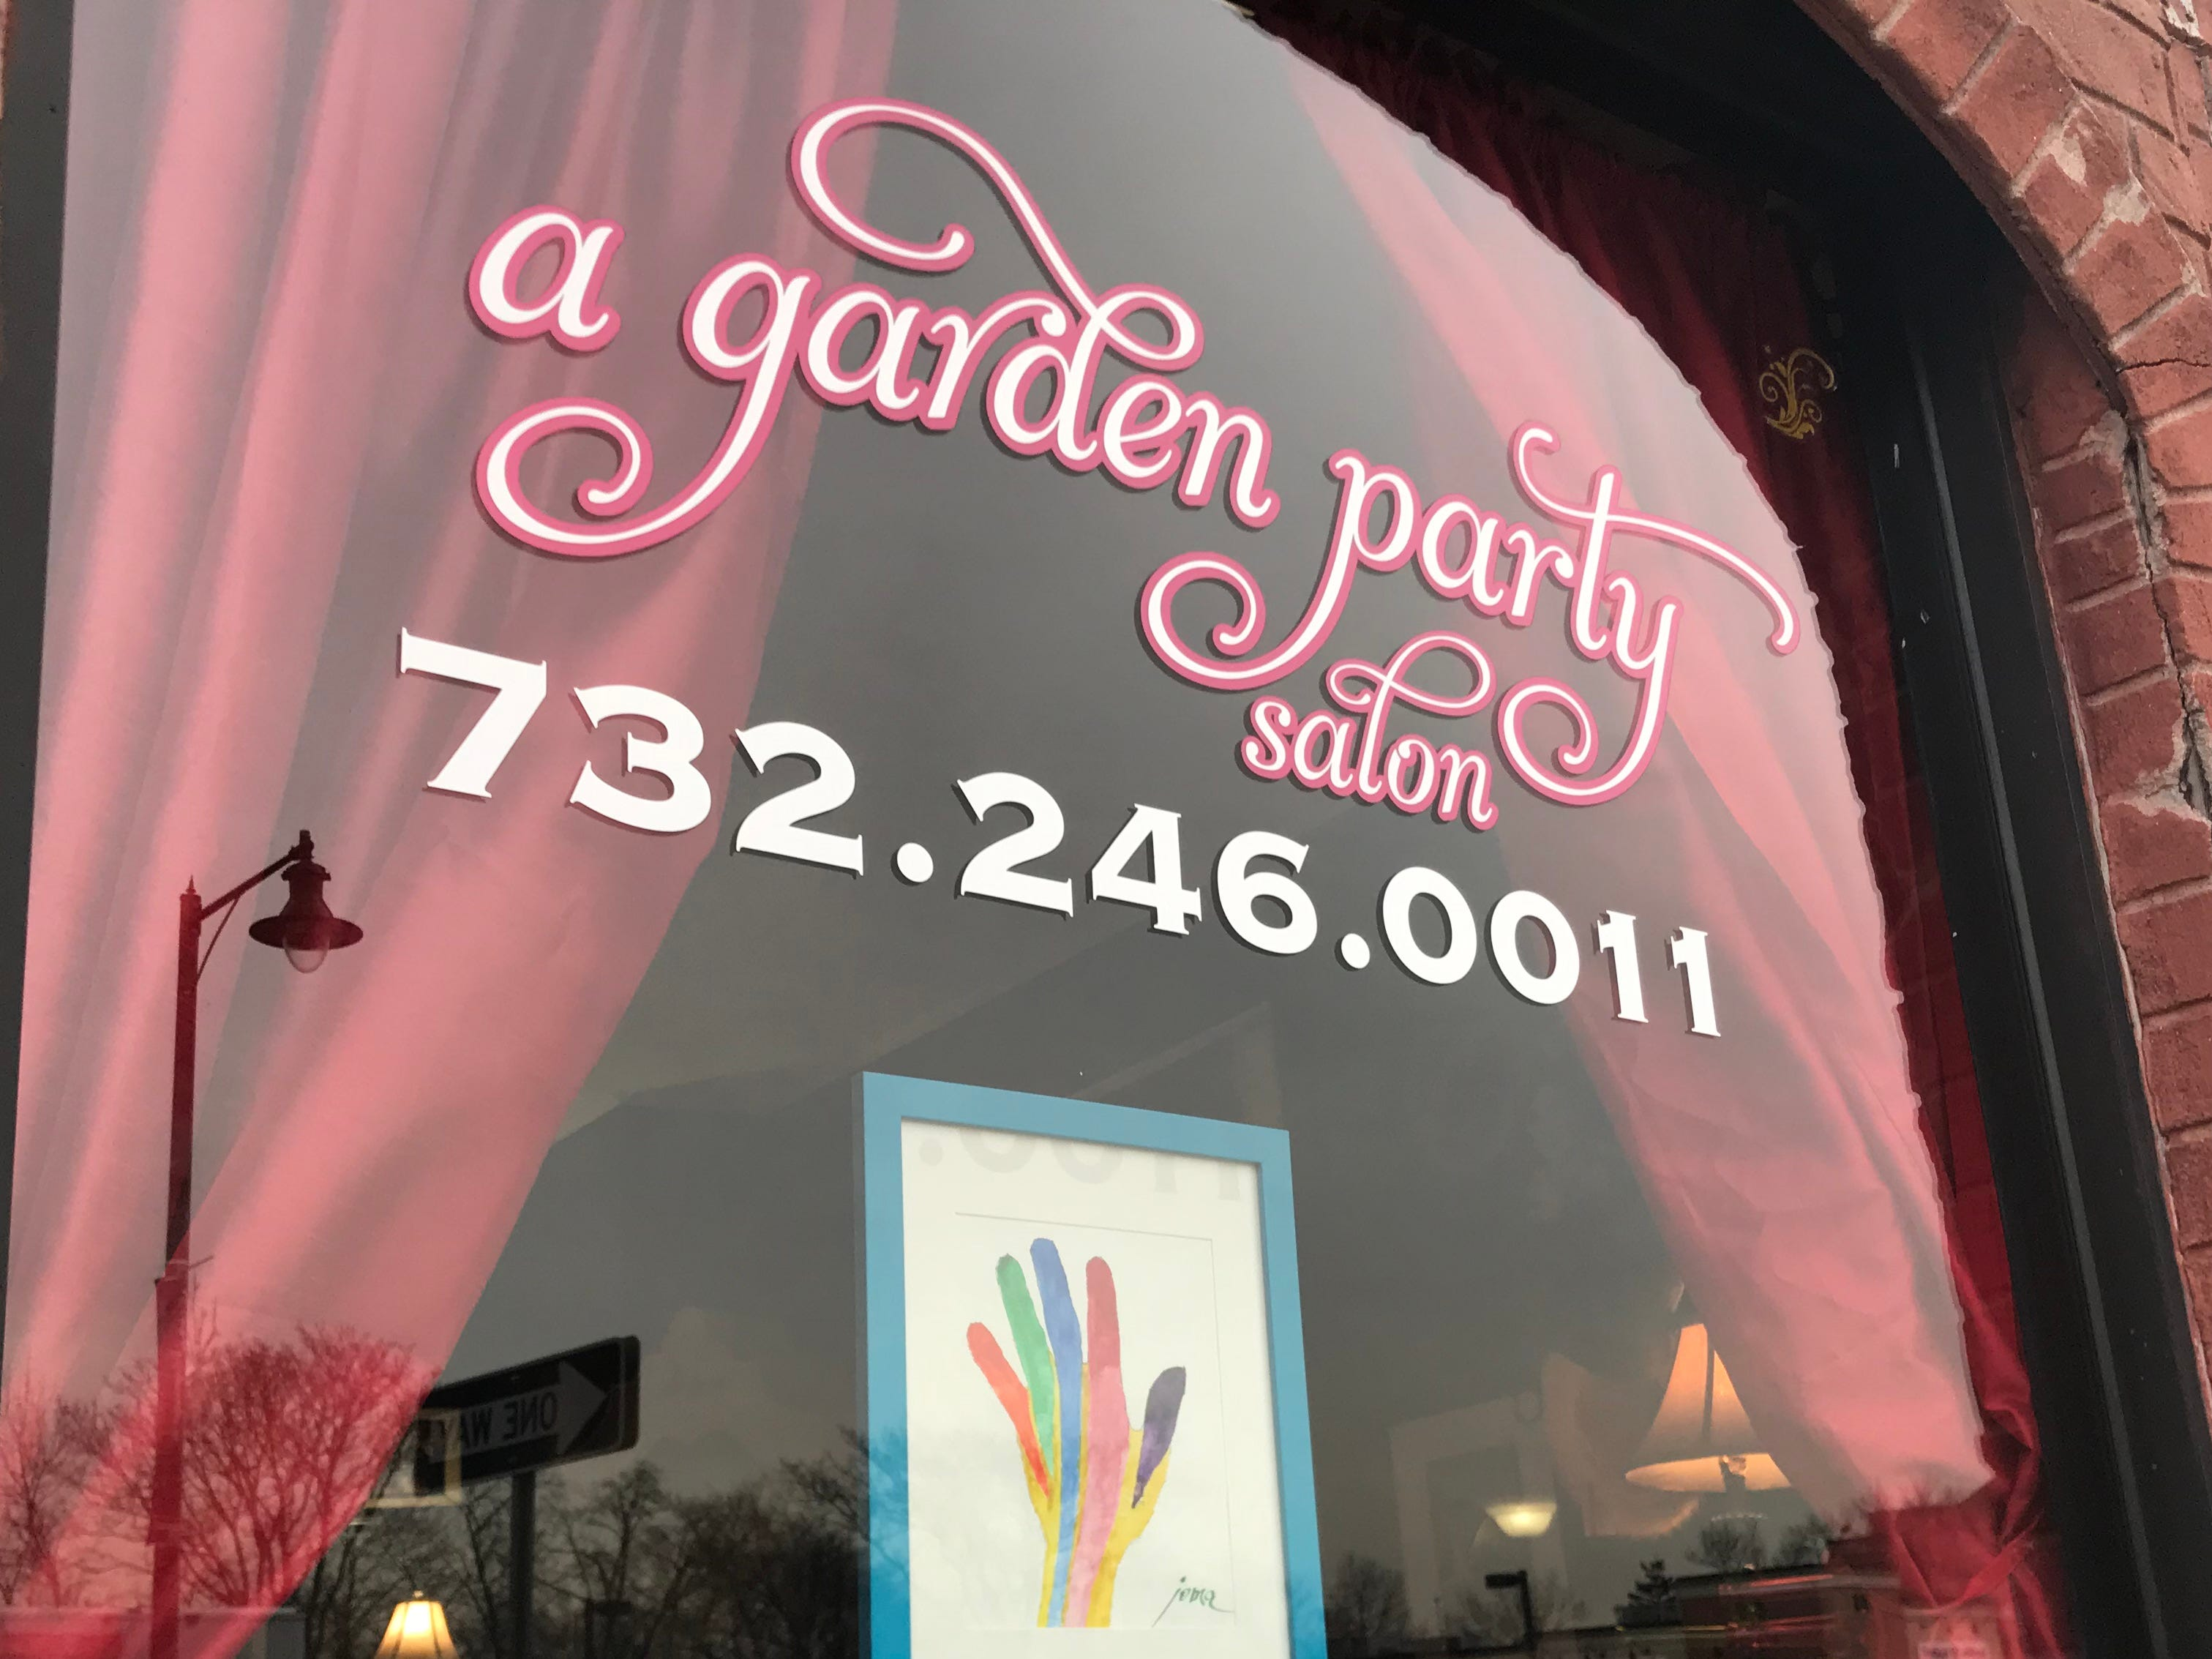 "John Maron's ""Rainbow"" Hand"" aims to raise awareness about the efforts of the Gay Lesbian & Straight Education Network (GLSEN) at A Garden Party Salon in Highland Park as part of the Windows of Understanding social justice display through Feb. 28."